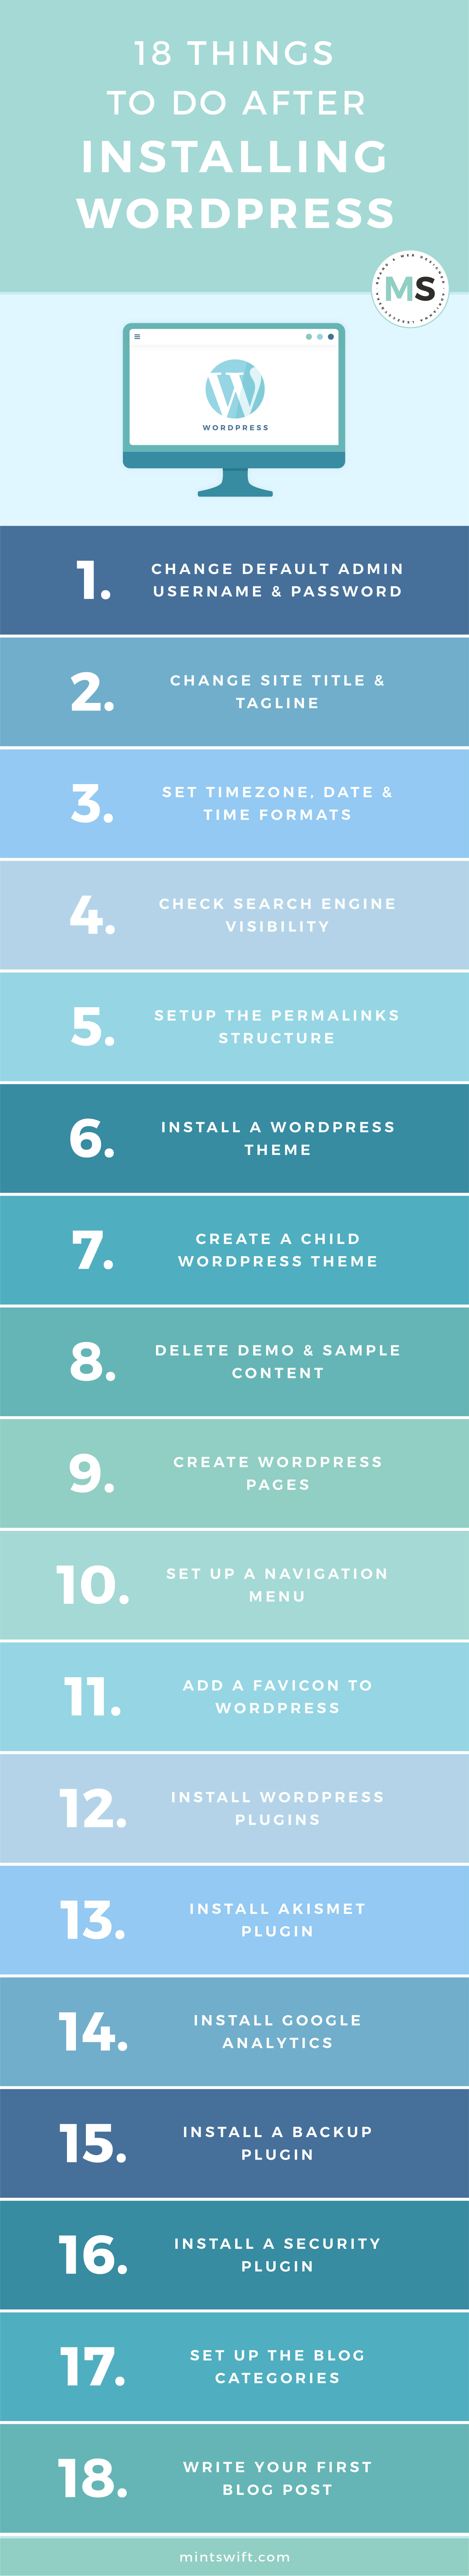 18 Things to Do After Installing WordPress infographic - MintSwift